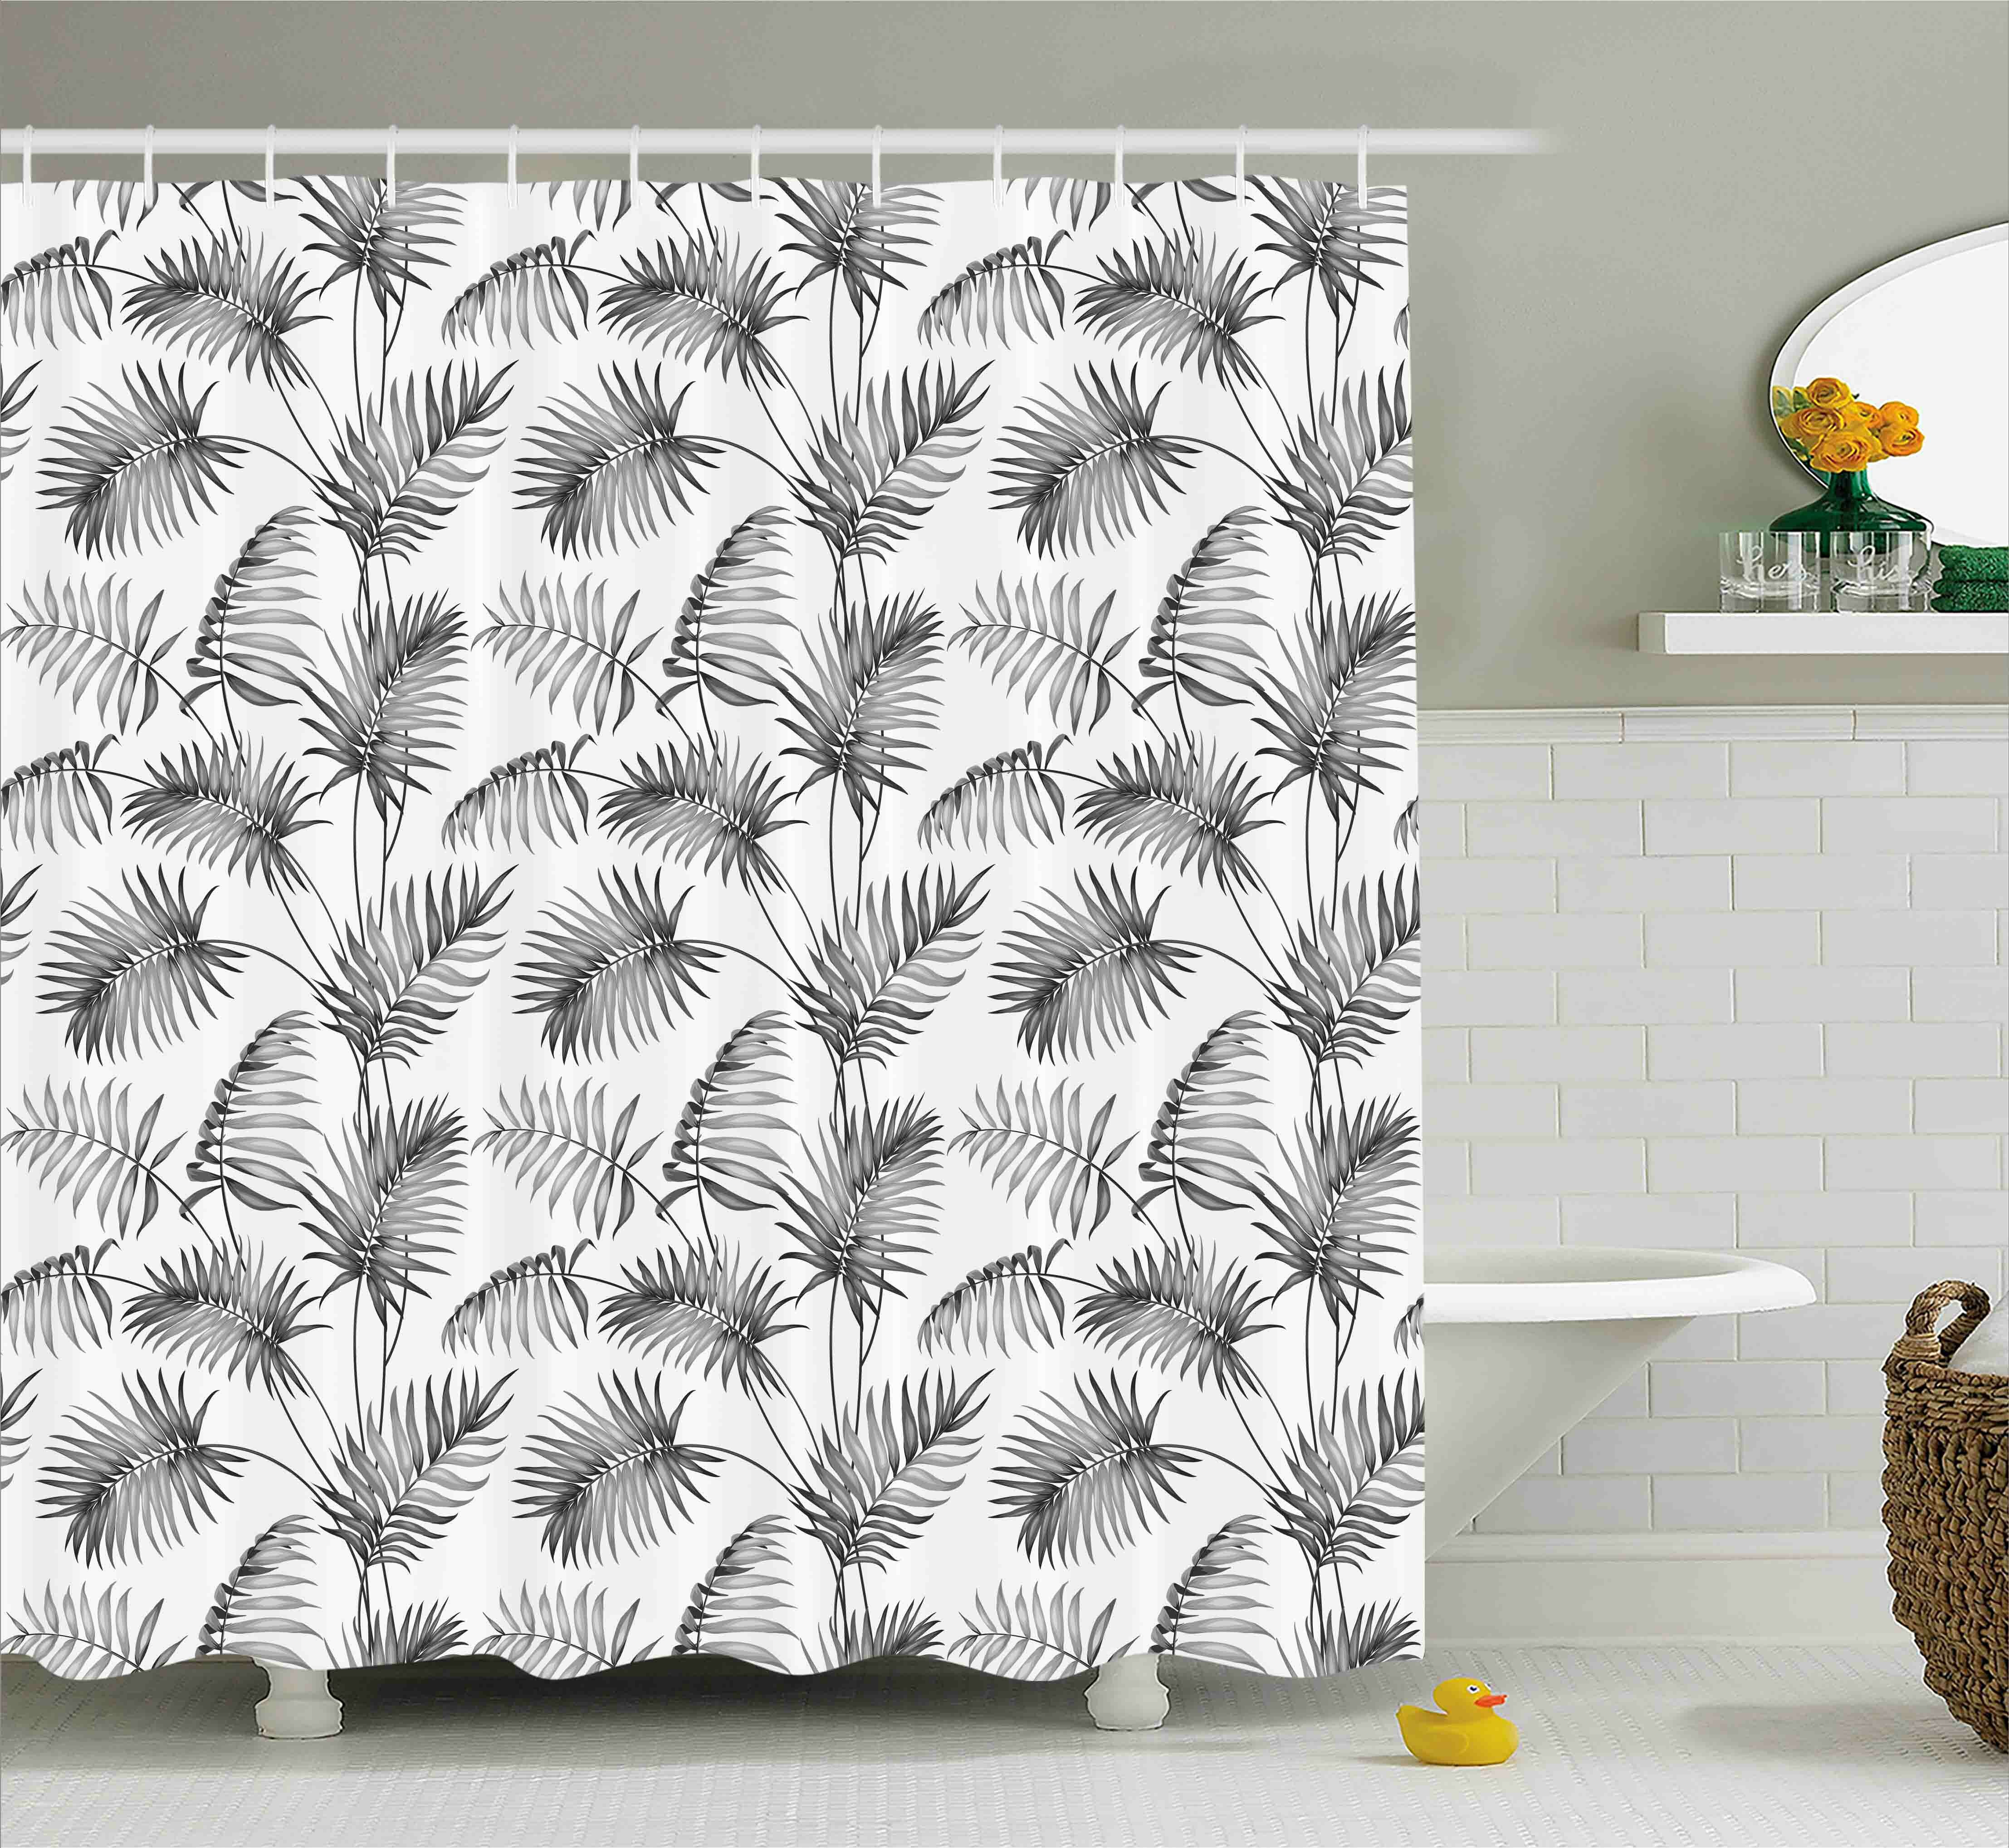 Bayou Breeze Applecroft Palm Leaf Botanic Island Shower Curtain